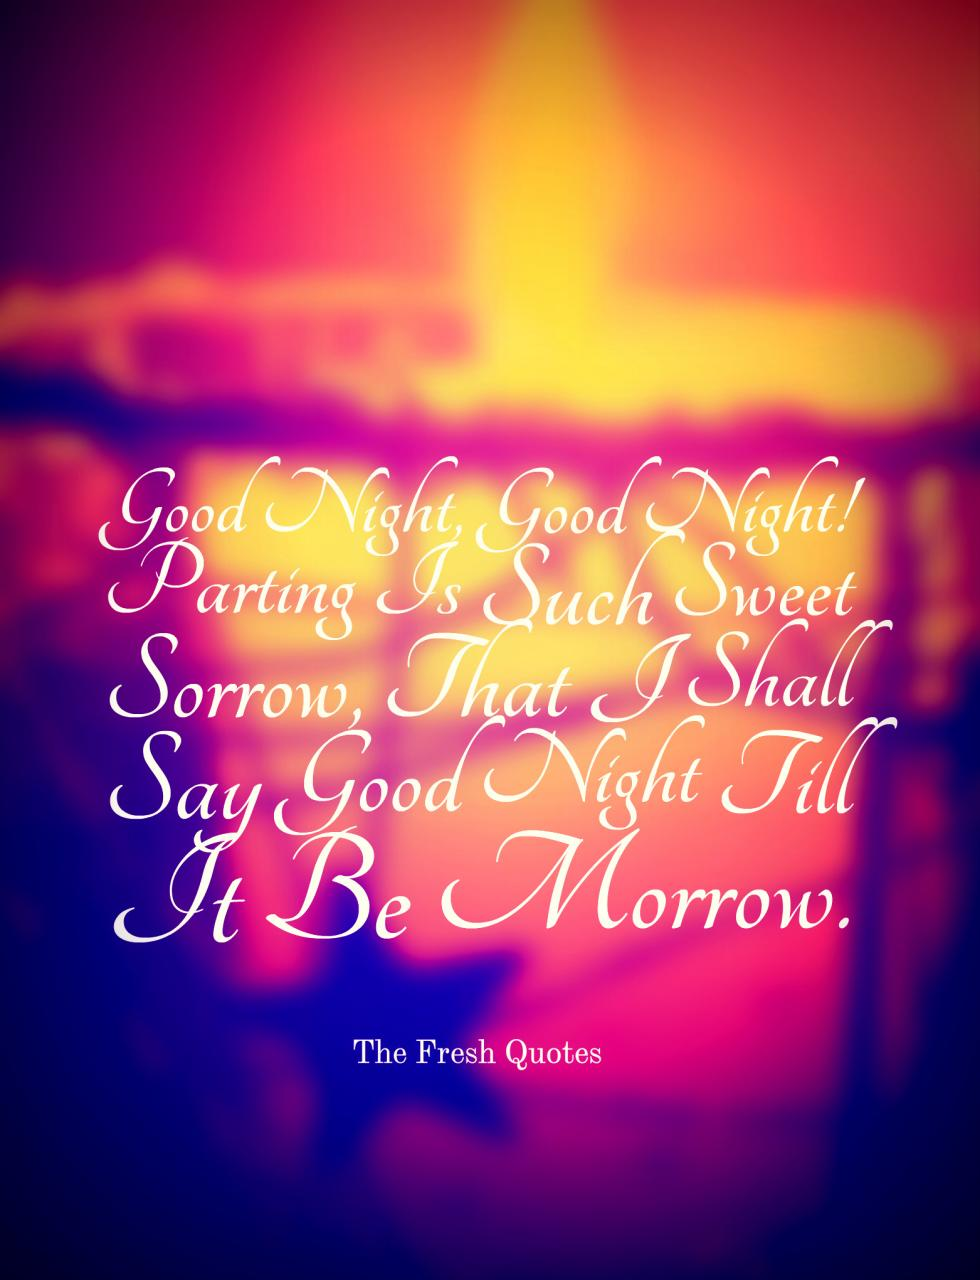 Good Night Good Night Parting Is Such Sweet Sorrow That I Shall Say Good Night Till It Be Morrow William Shakespeare